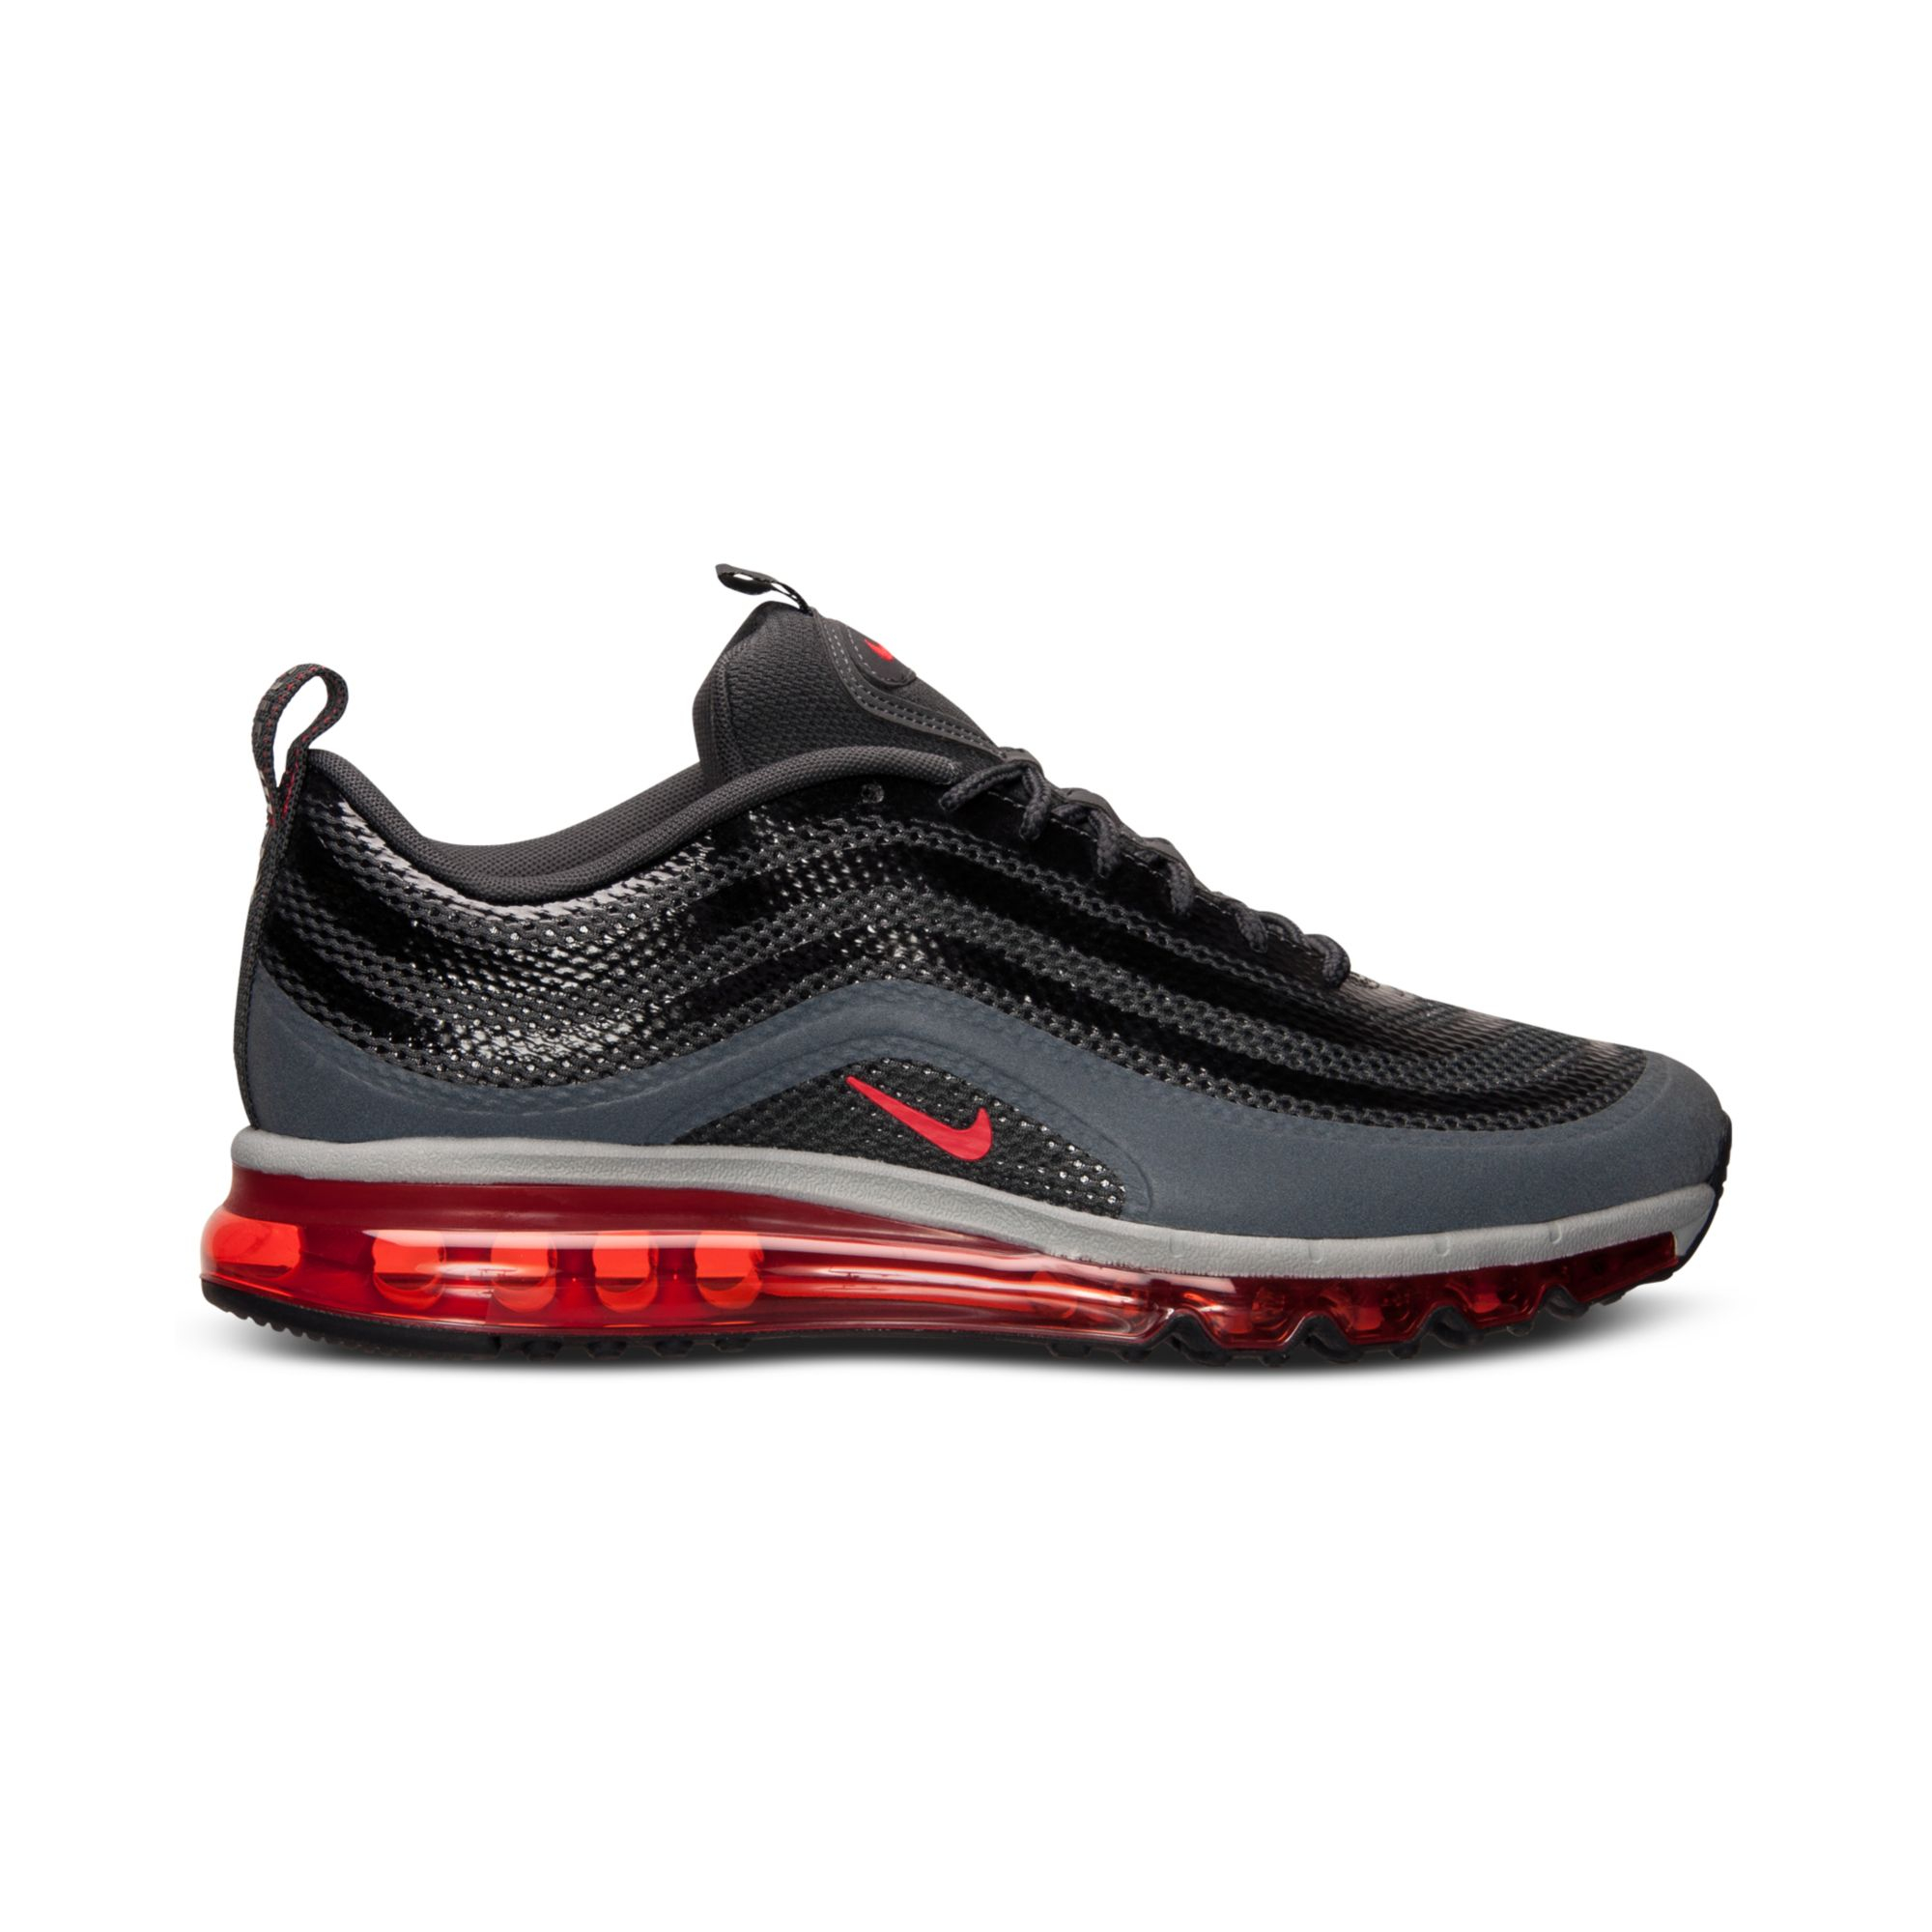 065f0ddf3fe Lyst - Nike Air Max 97 Running Sneakers in Red for Men